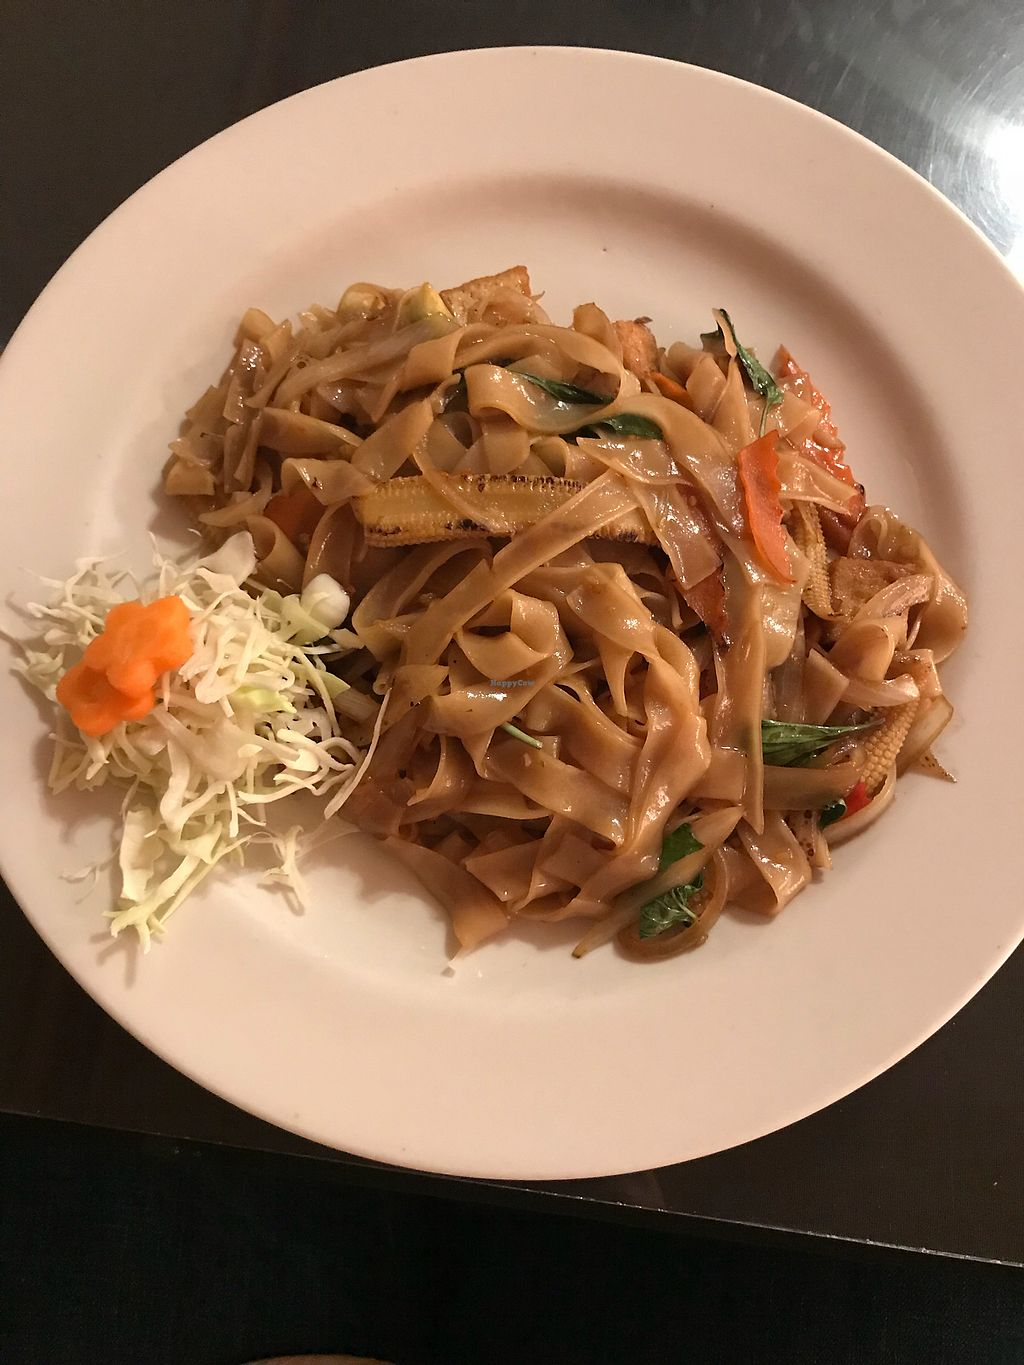 """Photo of Kati Thai Cuisine  by <a href=""""/members/profile/skipperkt"""">skipperkt</a> <br/>Drunken noodles <br/> March 31, 2018  - <a href='/contact/abuse/image/52641/378850'>Report</a>"""